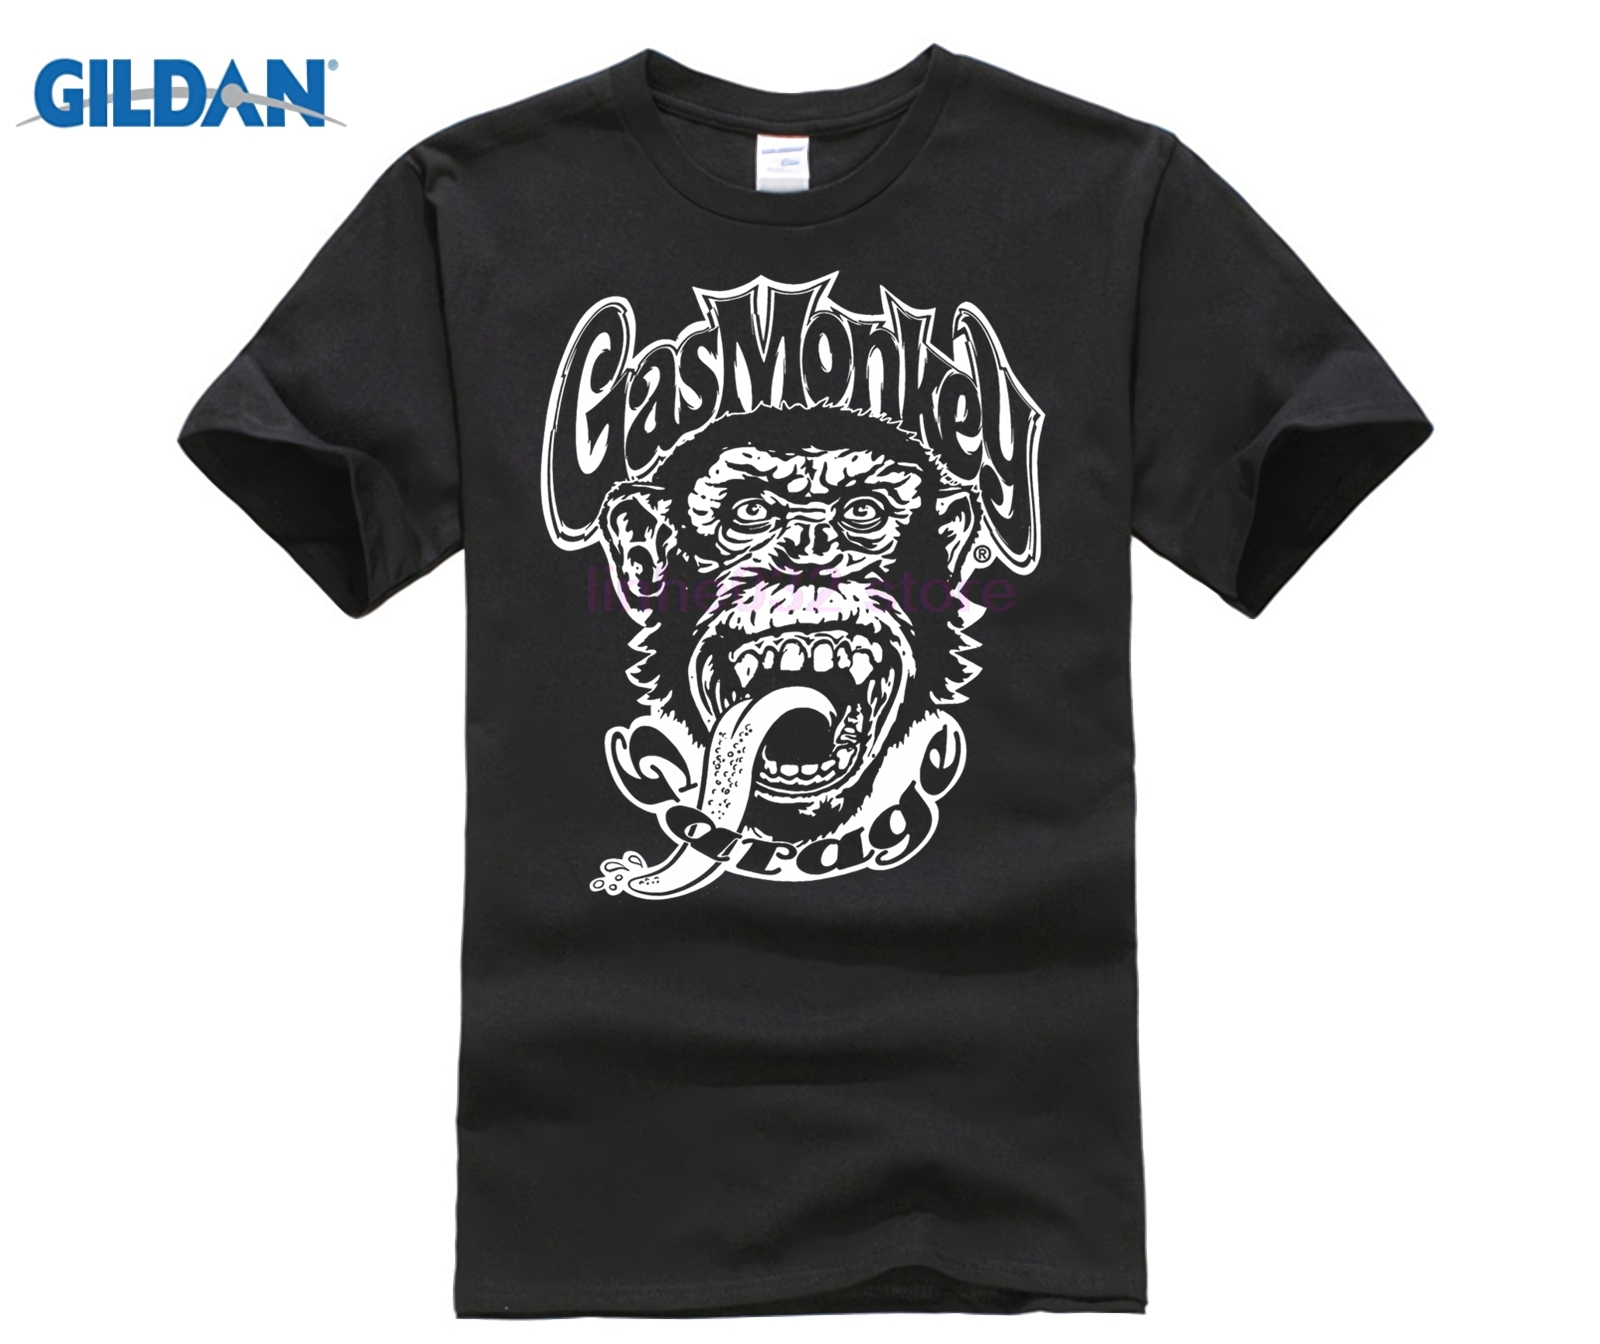 2717516c91 ᐂ Low price for camiseta de macaco and get free shipping - Light ...